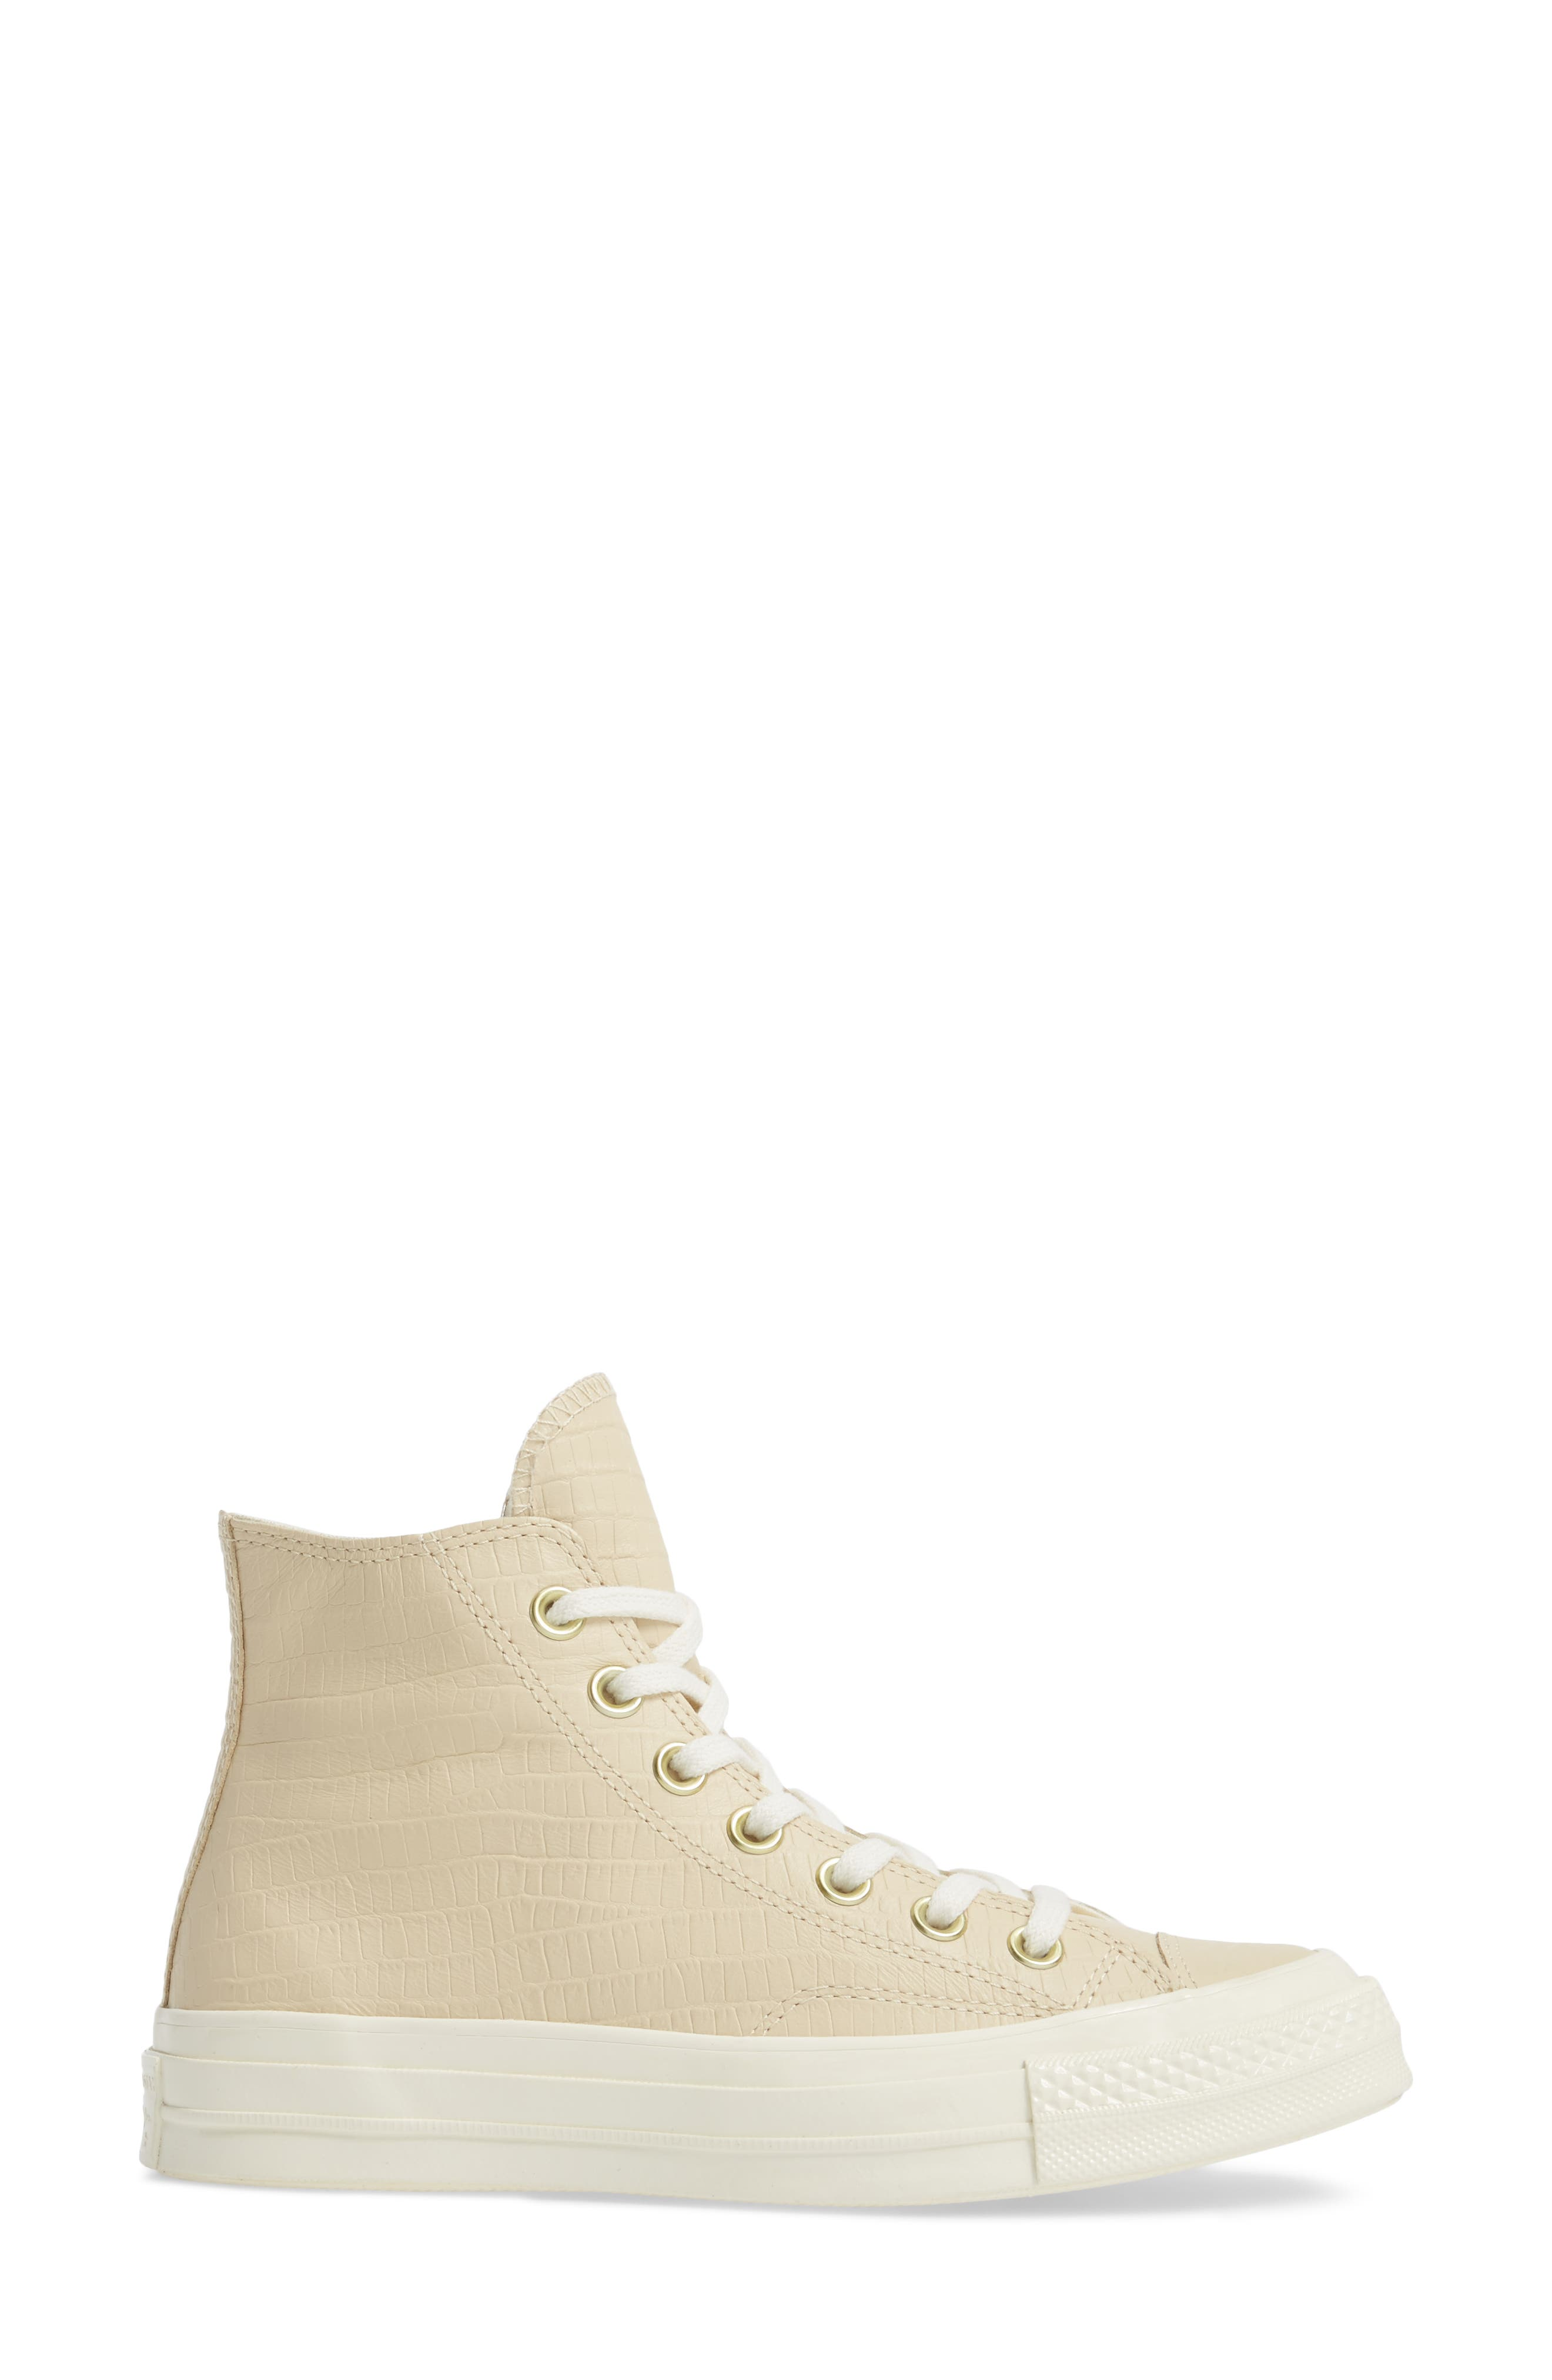 Chuck Taylor<sup>®</sup> All Star<sup>®</sup> CT 70 Reptile High Top Sneaker,                             Alternate thumbnail 3, color,                             Light Twine